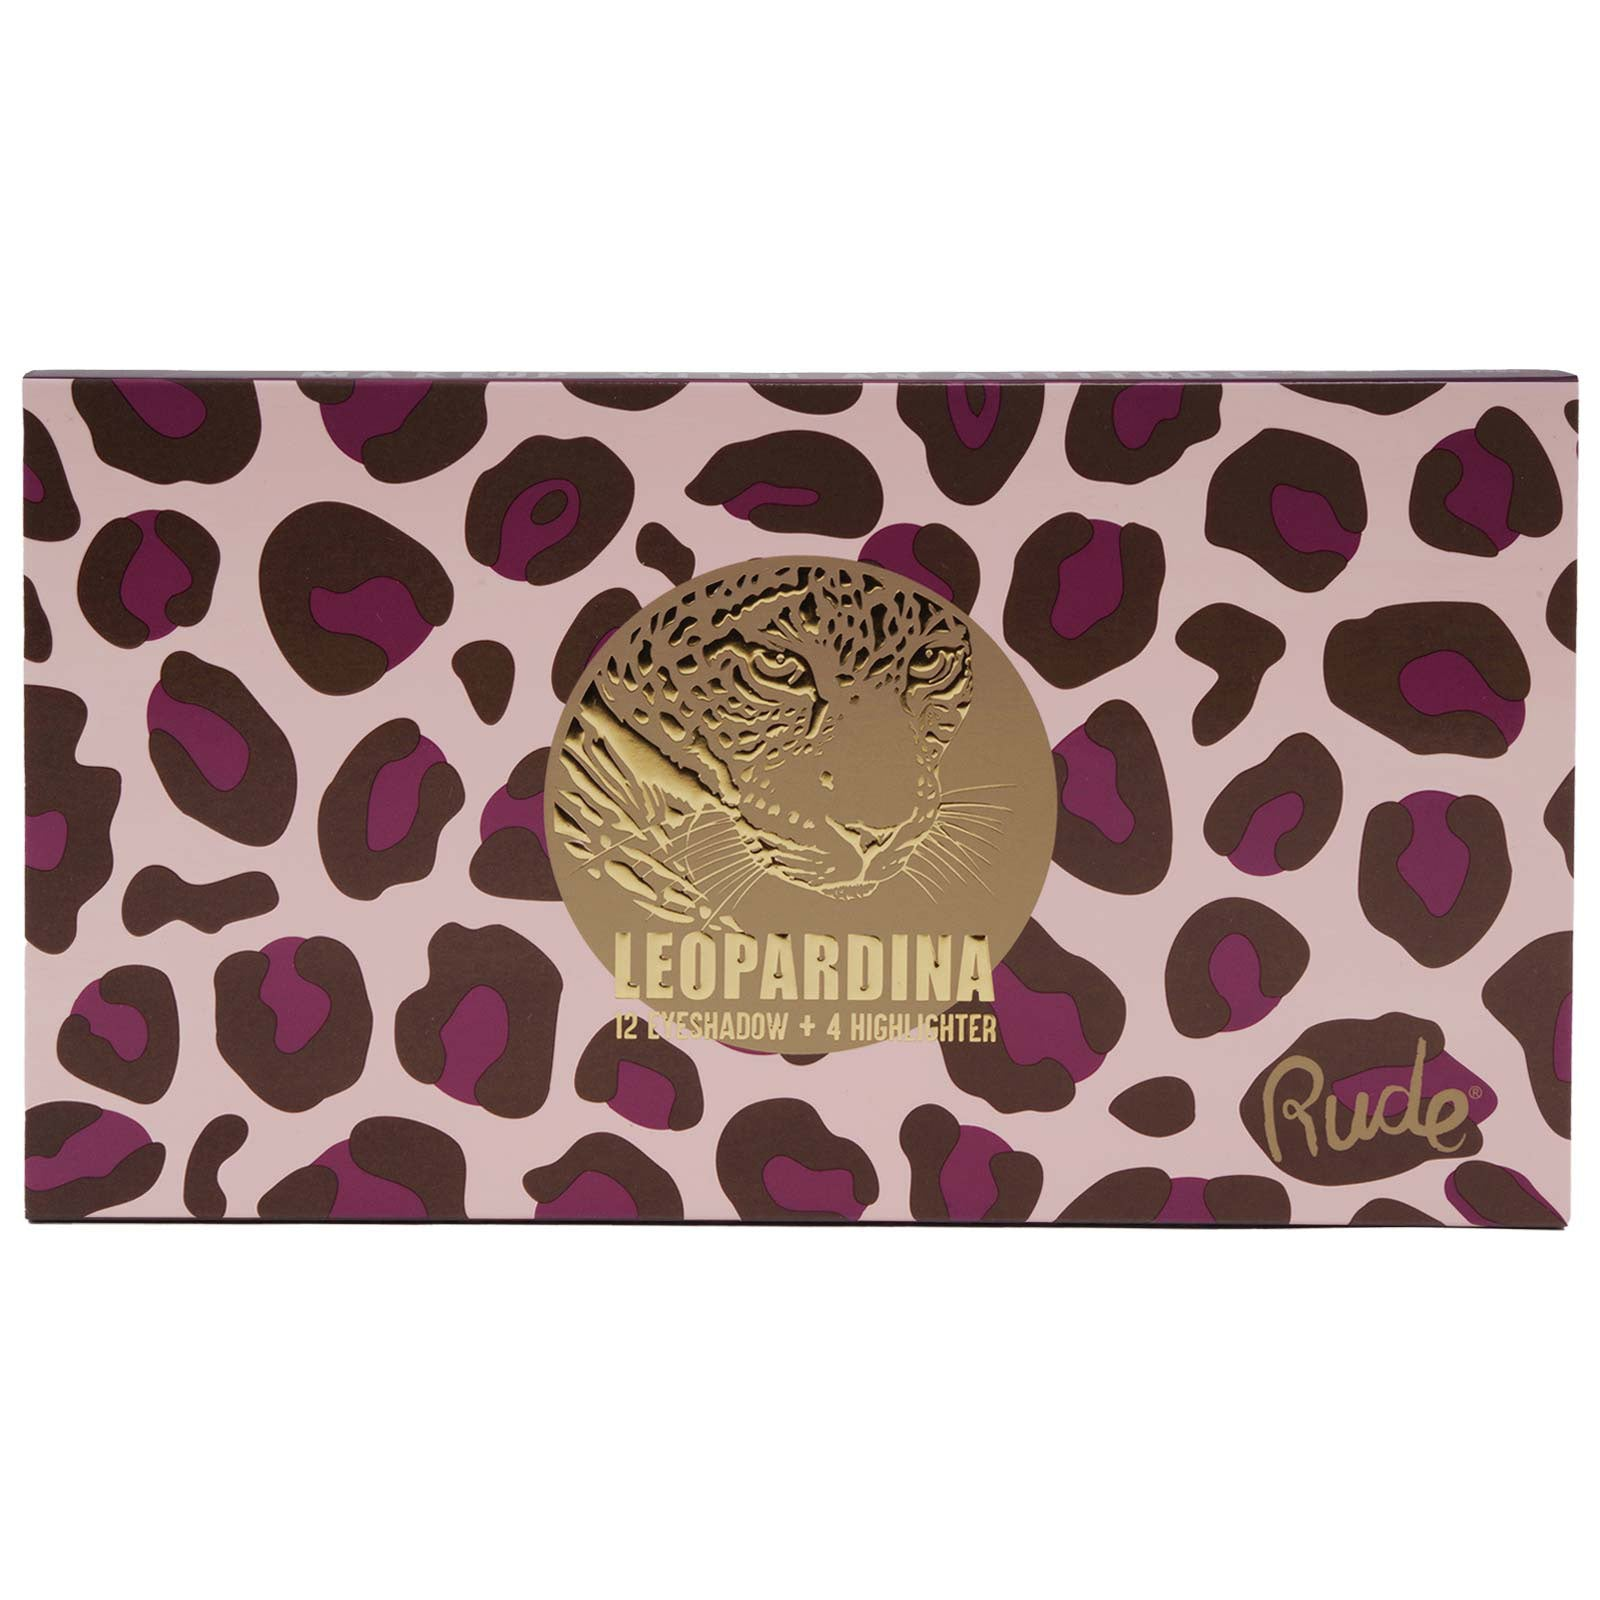 RUDE COSMETICS | Leopardina Face Palette w/ 4 Highlighters & 12 Eyeshadows (12/cs)